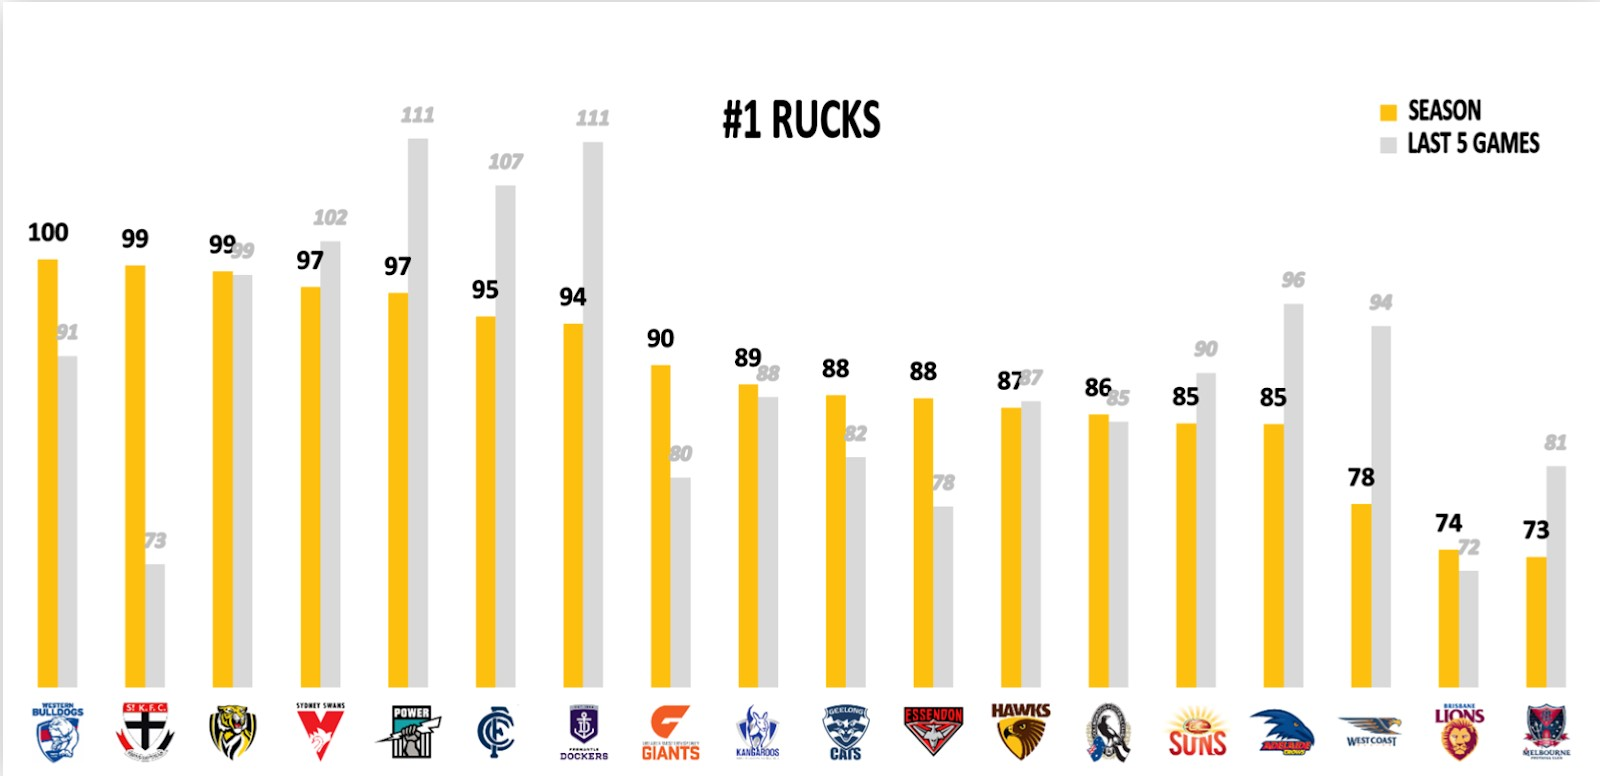 Points Against - Number 1 Ruck